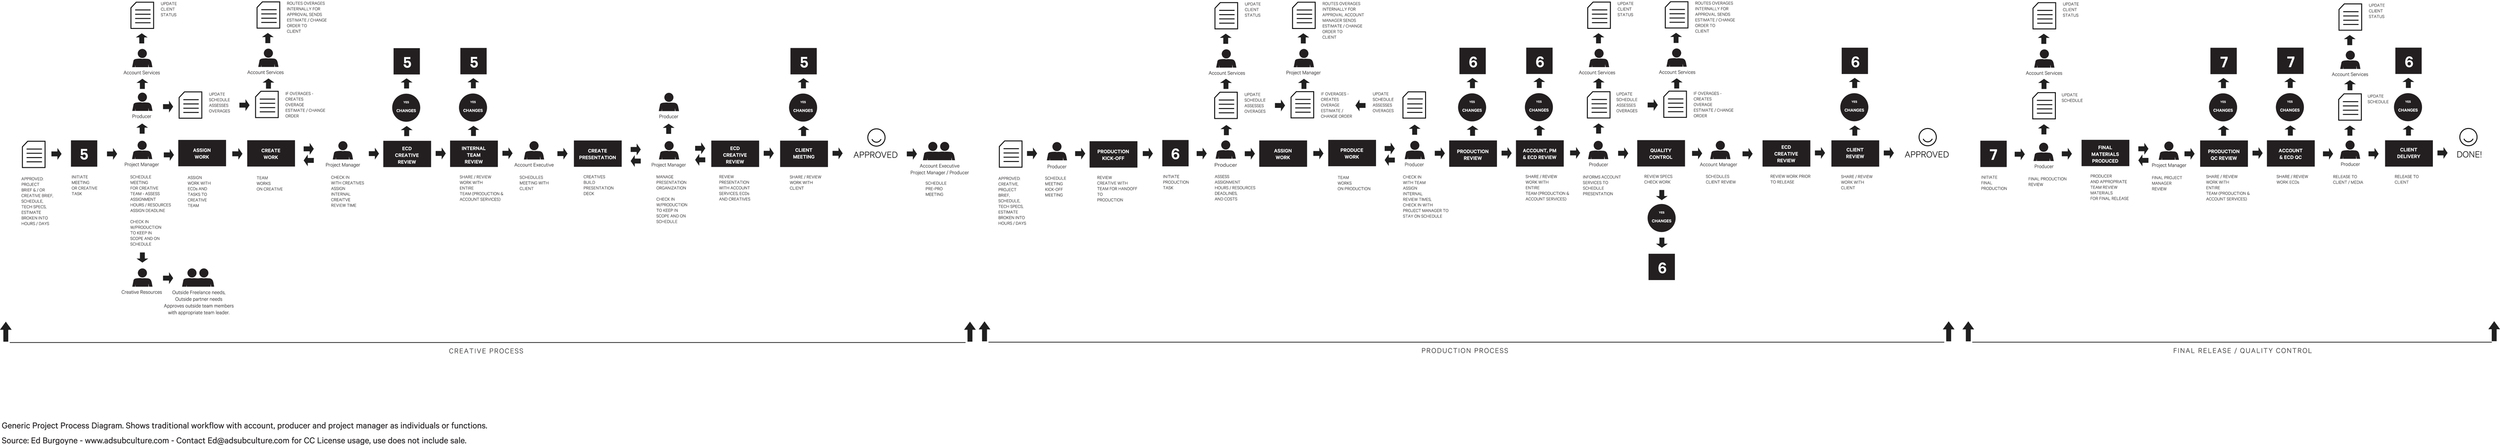 ADSUBCULTUTRE_Project_Workflow.jpg